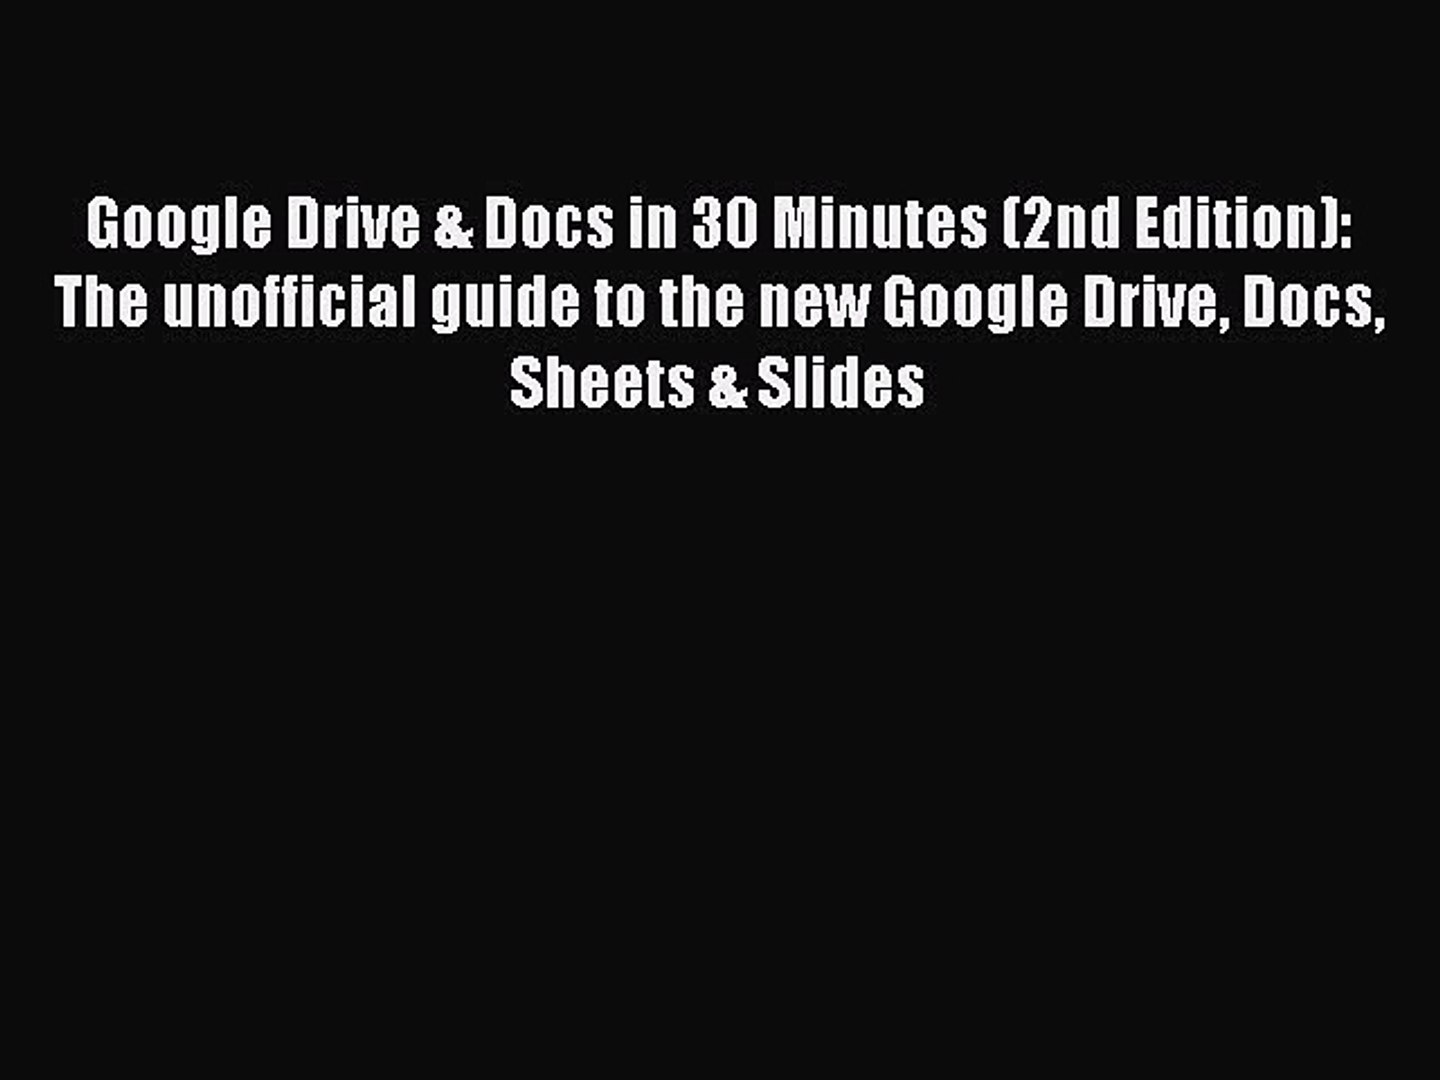 [PDF] Google Drive & Docs in 30 Minutes (2nd Edition): The unofficial guide to the new Google